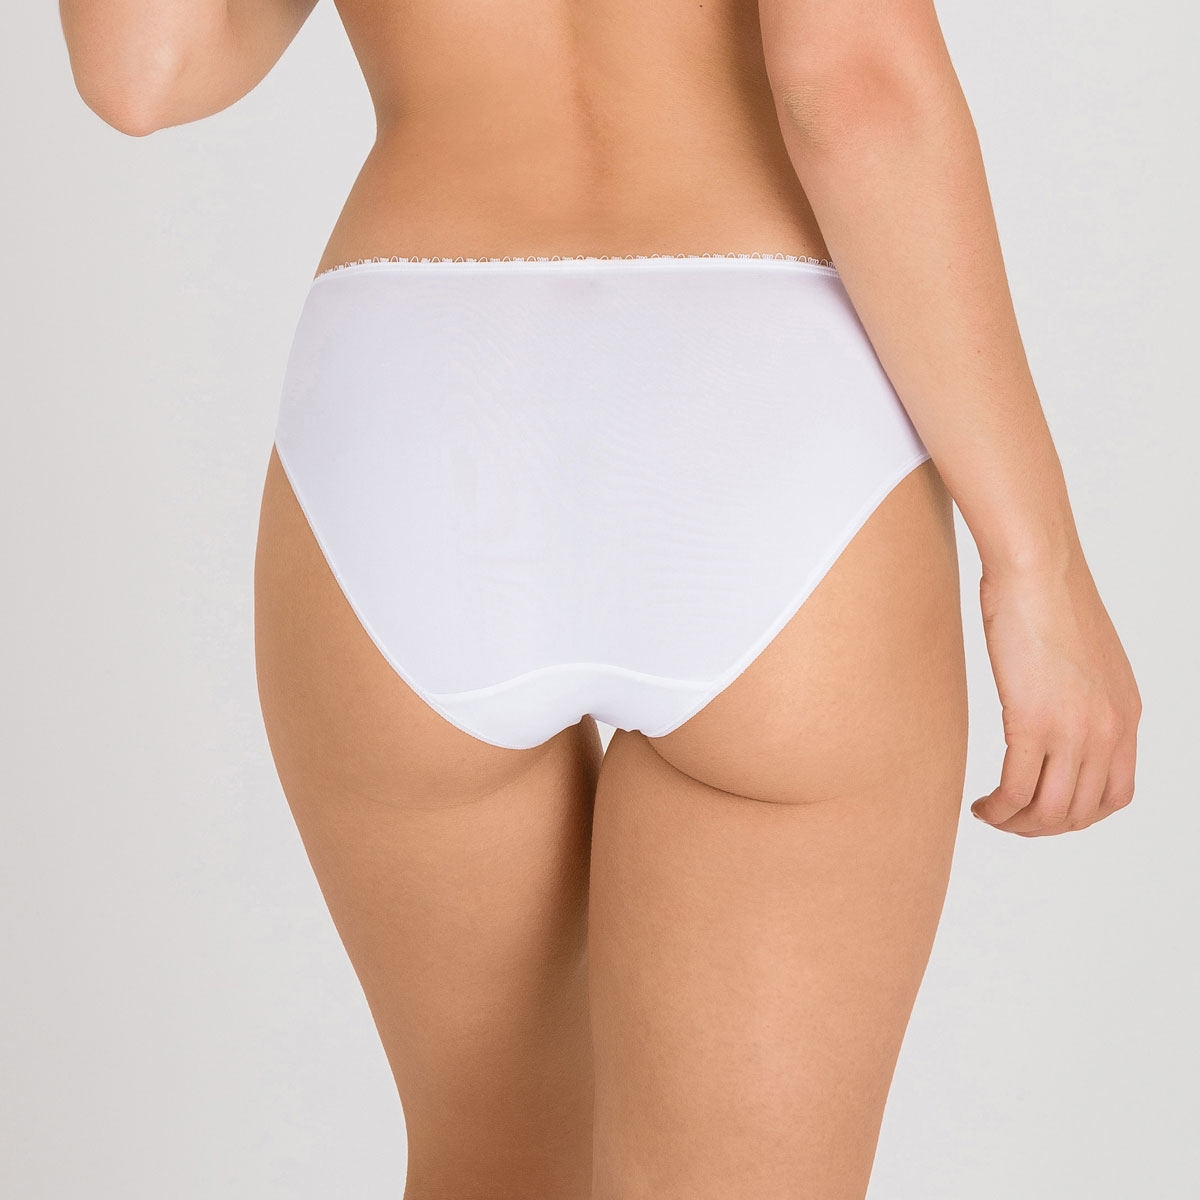 Mini knickers in white – Flower Elegance, , PLAYTEX